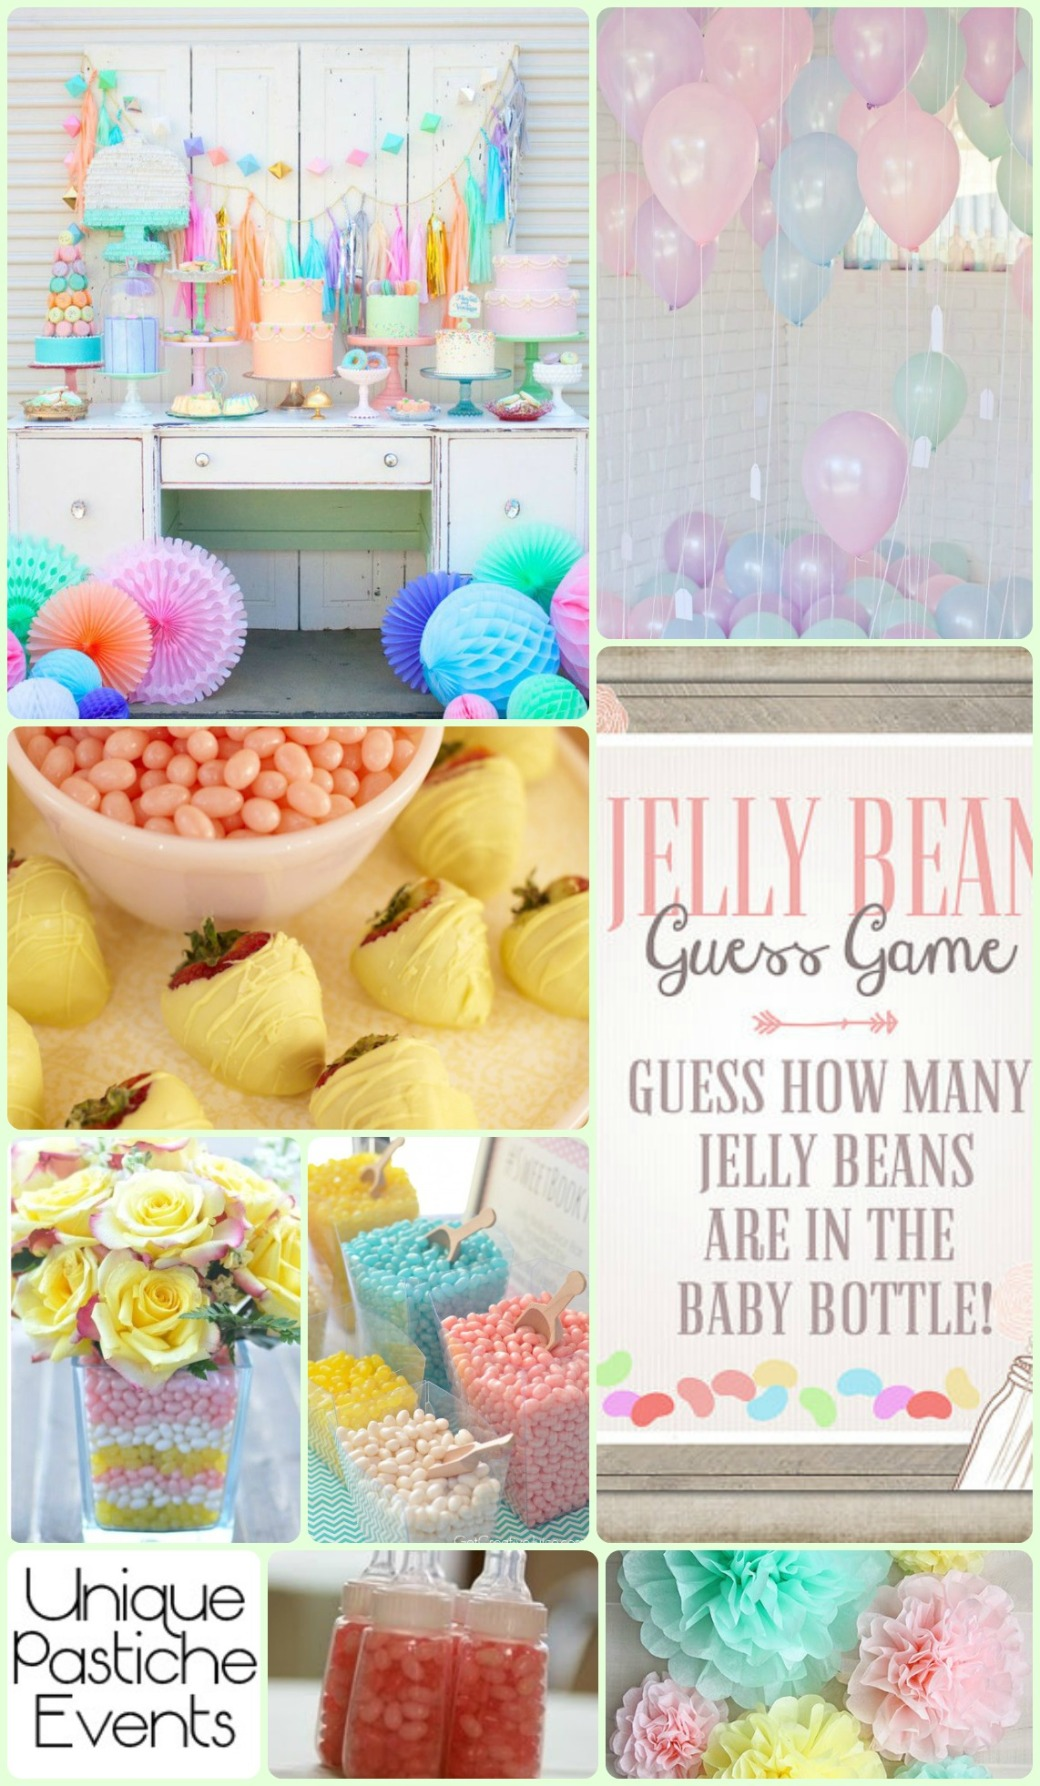 Sugary Sweet Pastels + Jelly Beans – Baby Shower Ideas See the full post for all the details: https://uniquepasticheevents.com/2015/05/06/sugary-sweet-pastels-jelly-beans-baby-shower-ideas/